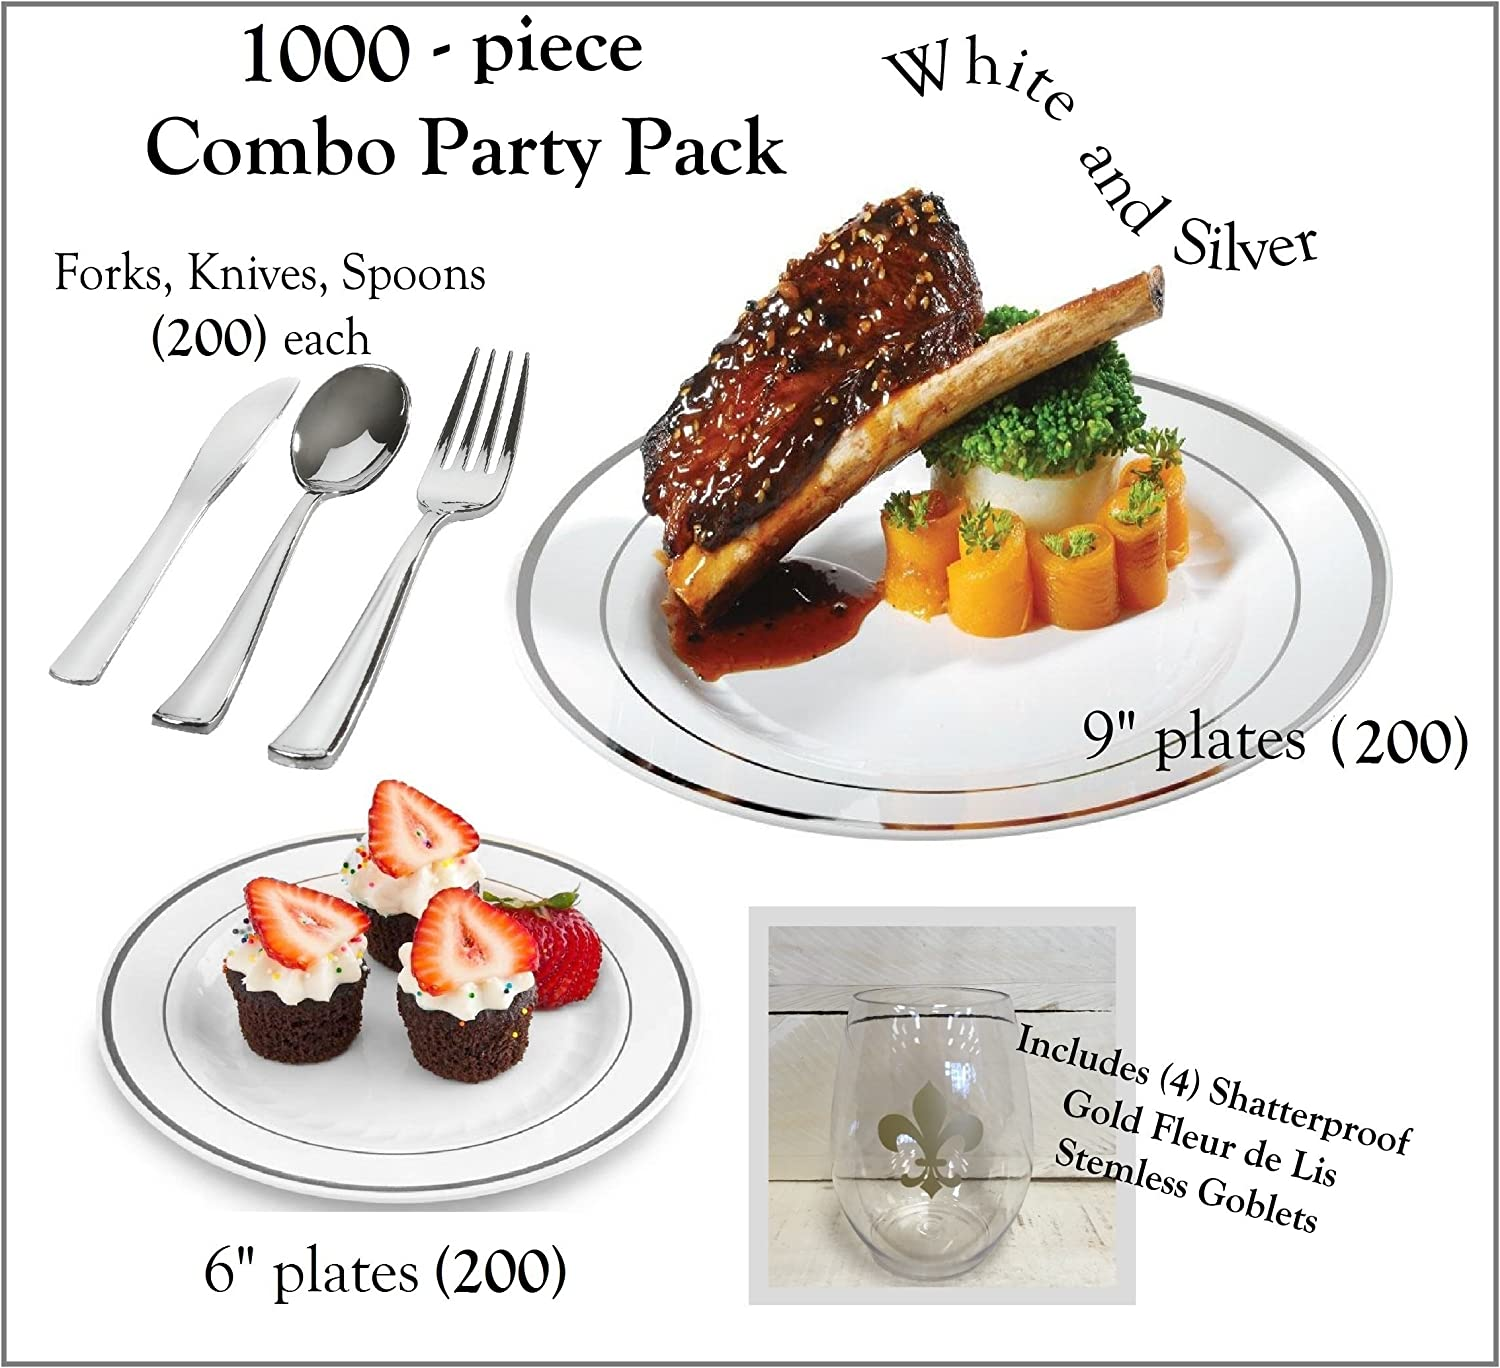 1000 Pieces Plastic China Plate Silverware Combo for 200 people WHITE with Silver Bands